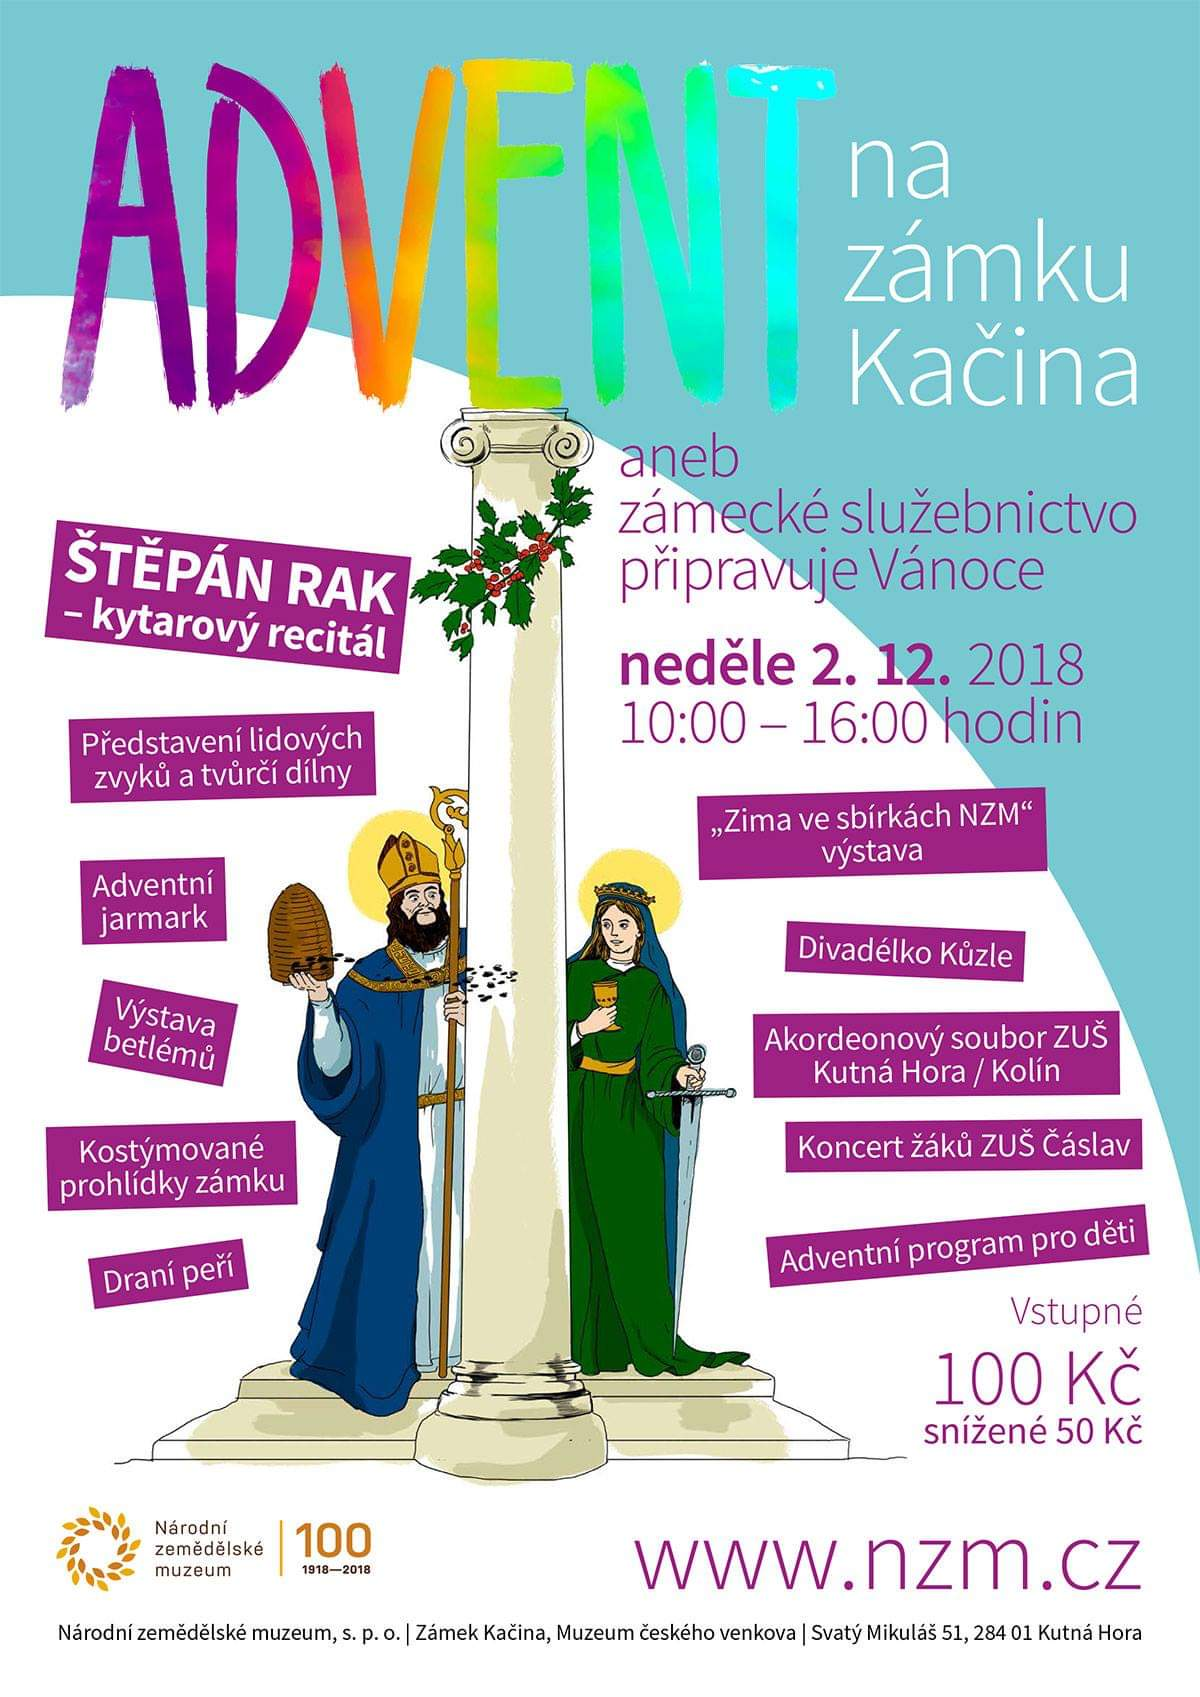 4720-advent-kacina.jpg